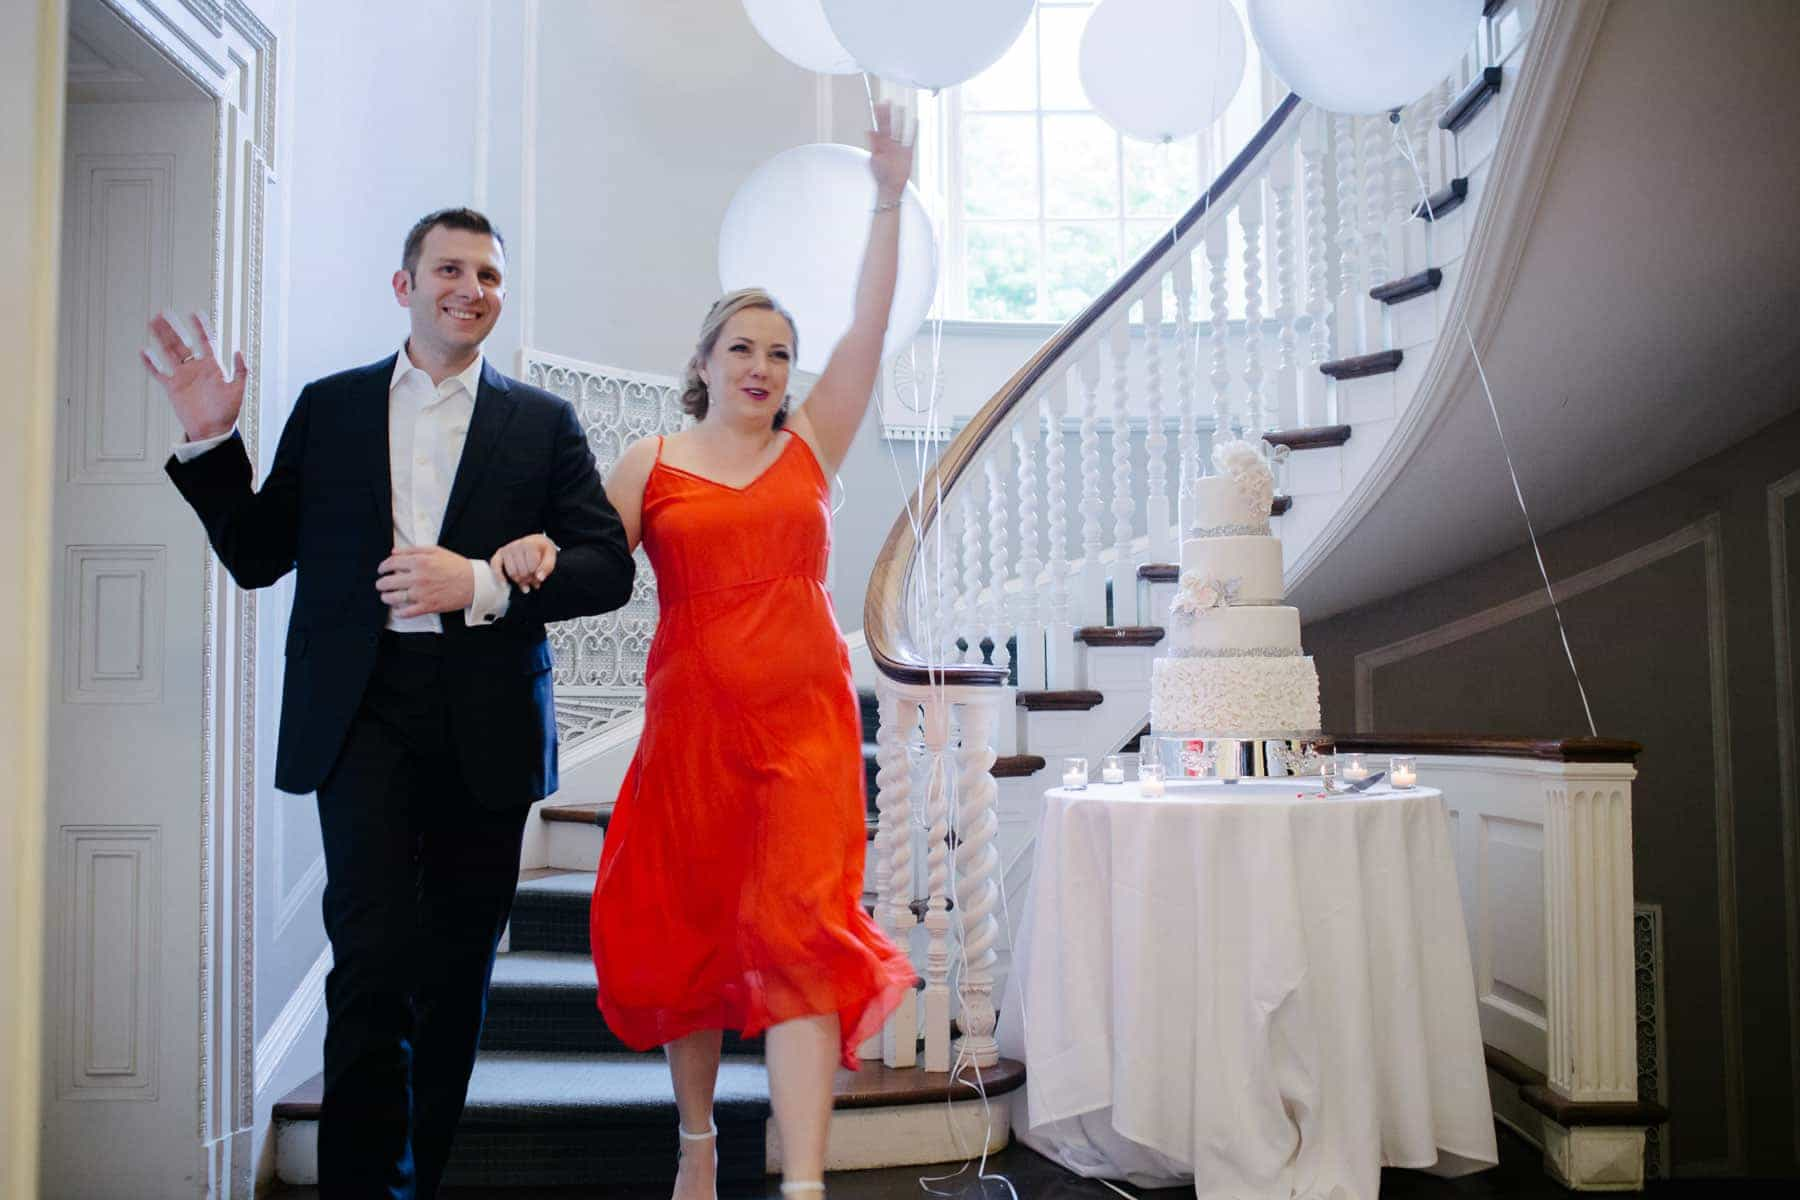 Groom and bride (in red dress) descent stairs at McClain House, Estates of Sunnybrook.